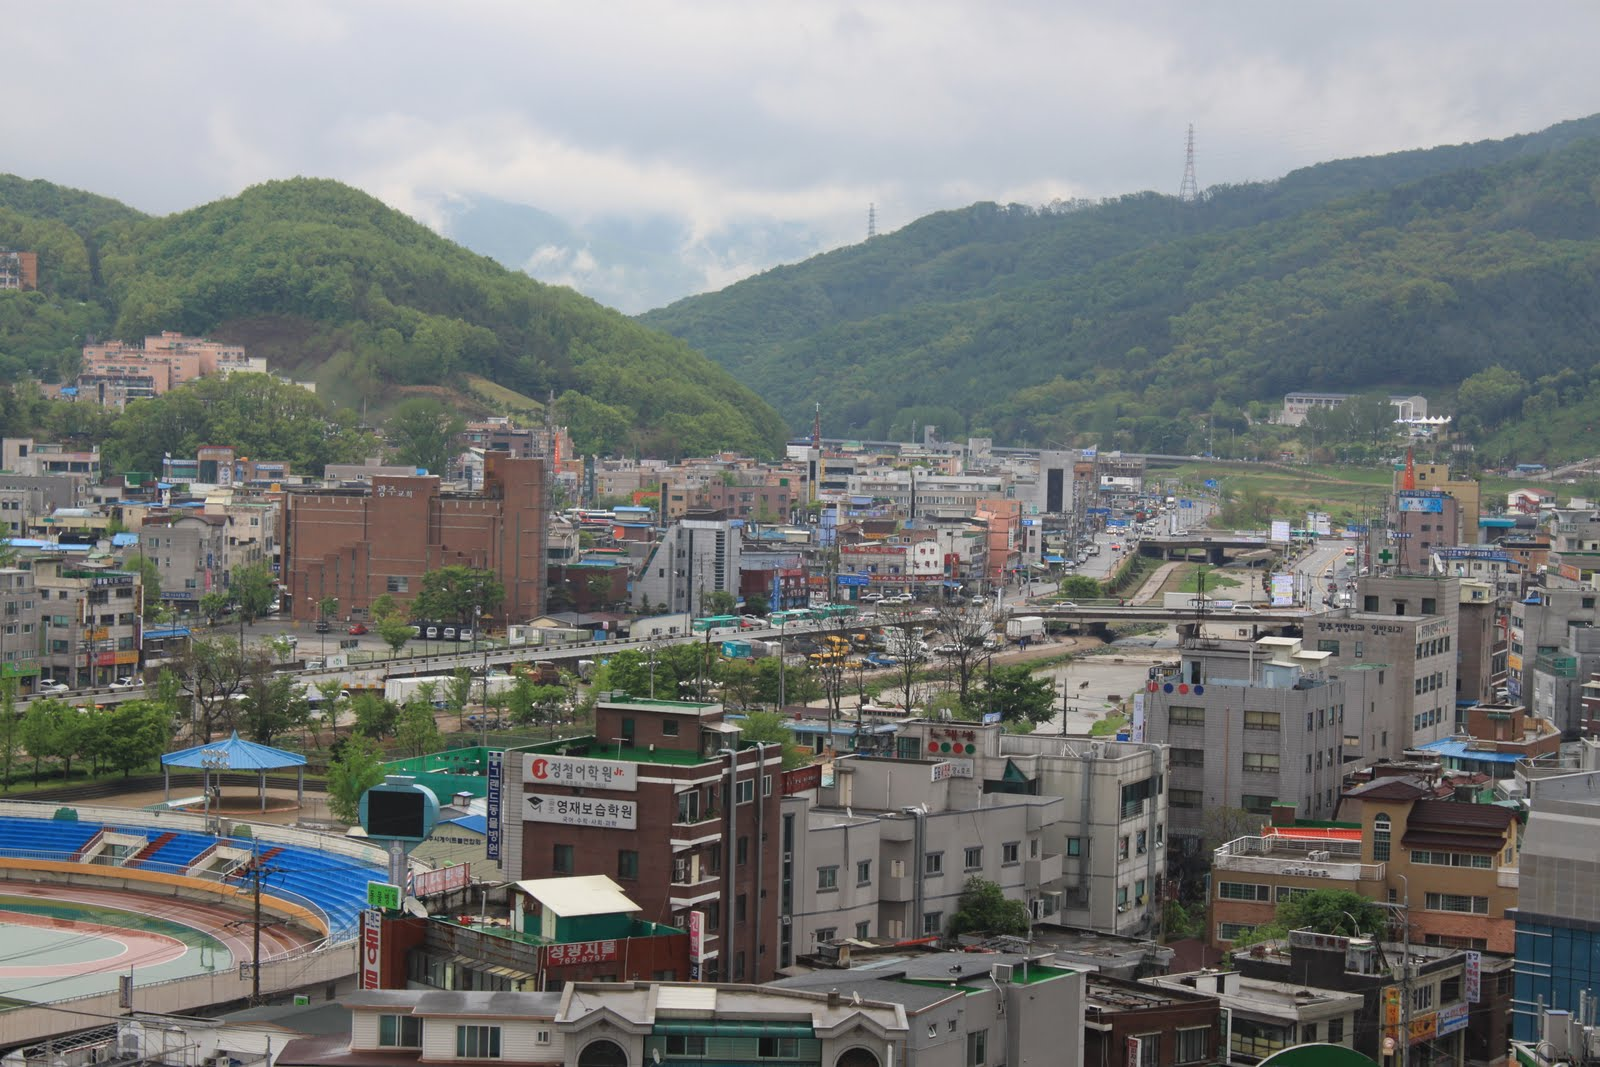 Hanam-si South Korea  city photos gallery : ... see in South Korea but it was pretty new and the rooms were spacious